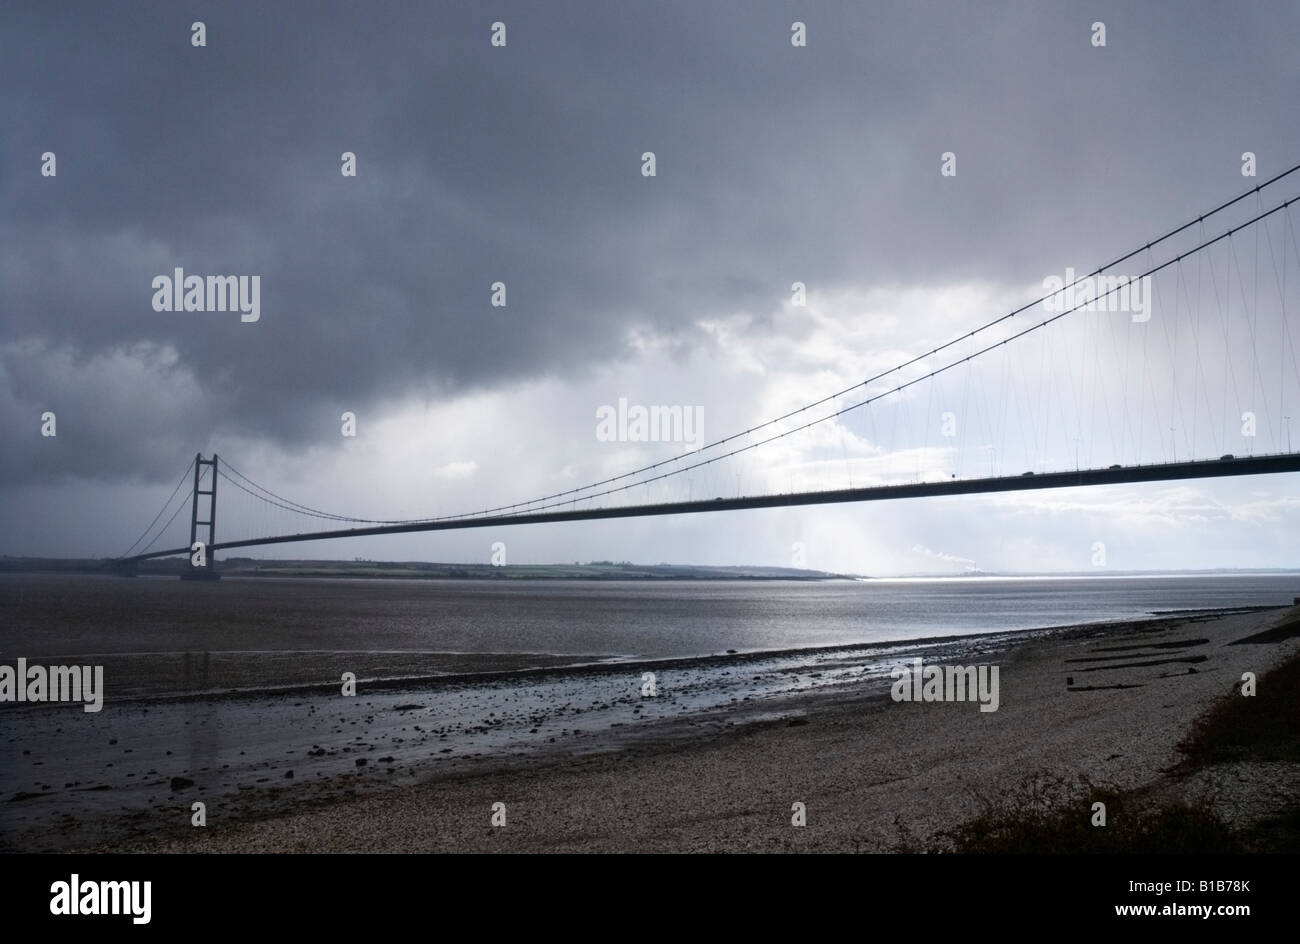 The Humber Bridge, England Stock Photo